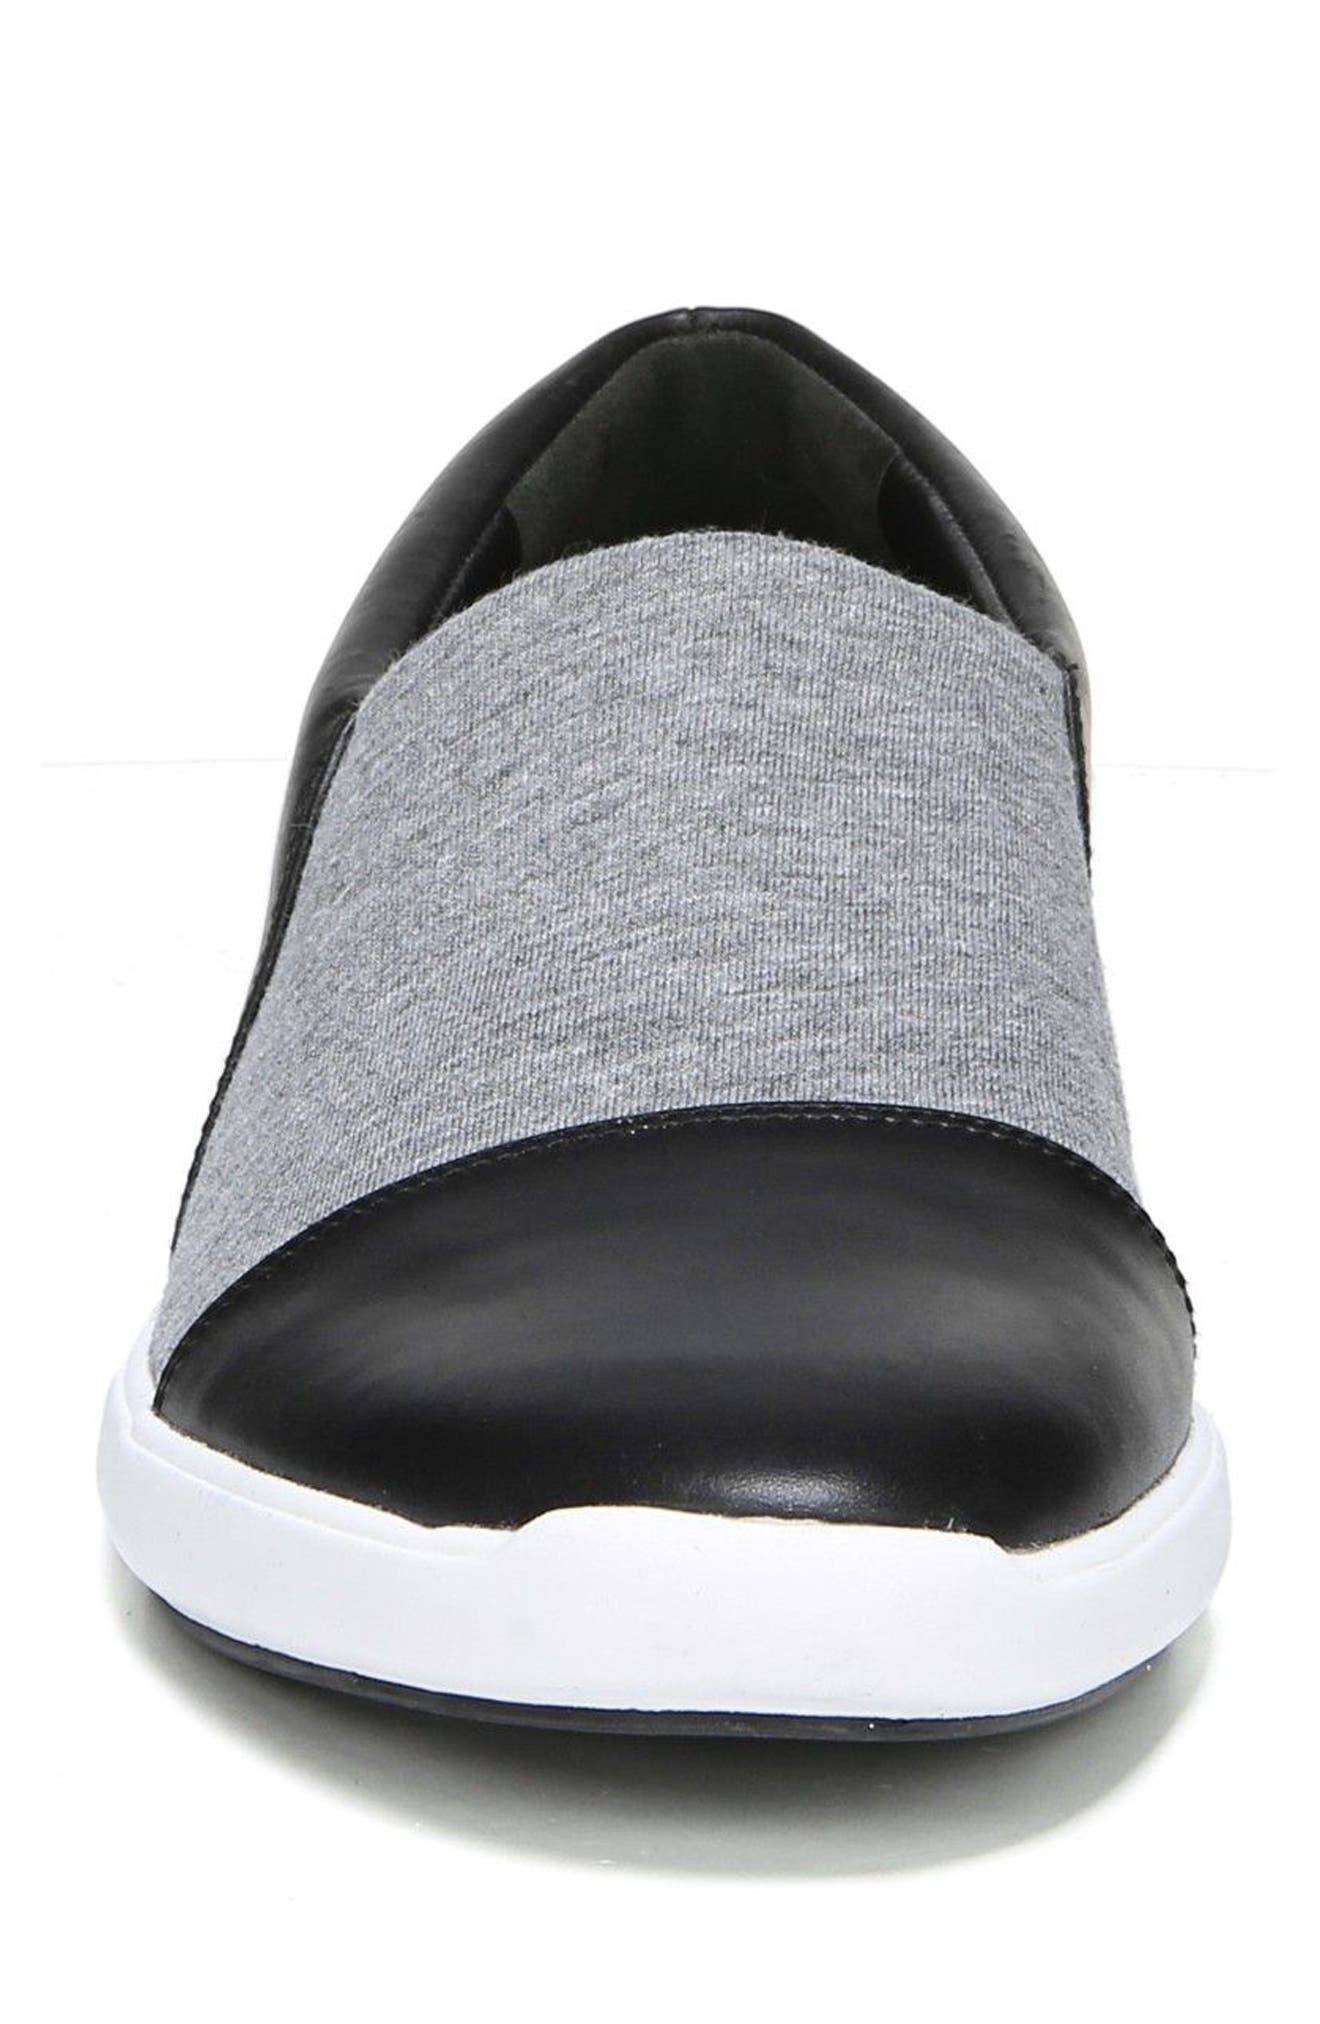 Morgan Slip-On Sneaker,                             Alternate thumbnail 5, color,                             Black/ Gray Stretch Fabric